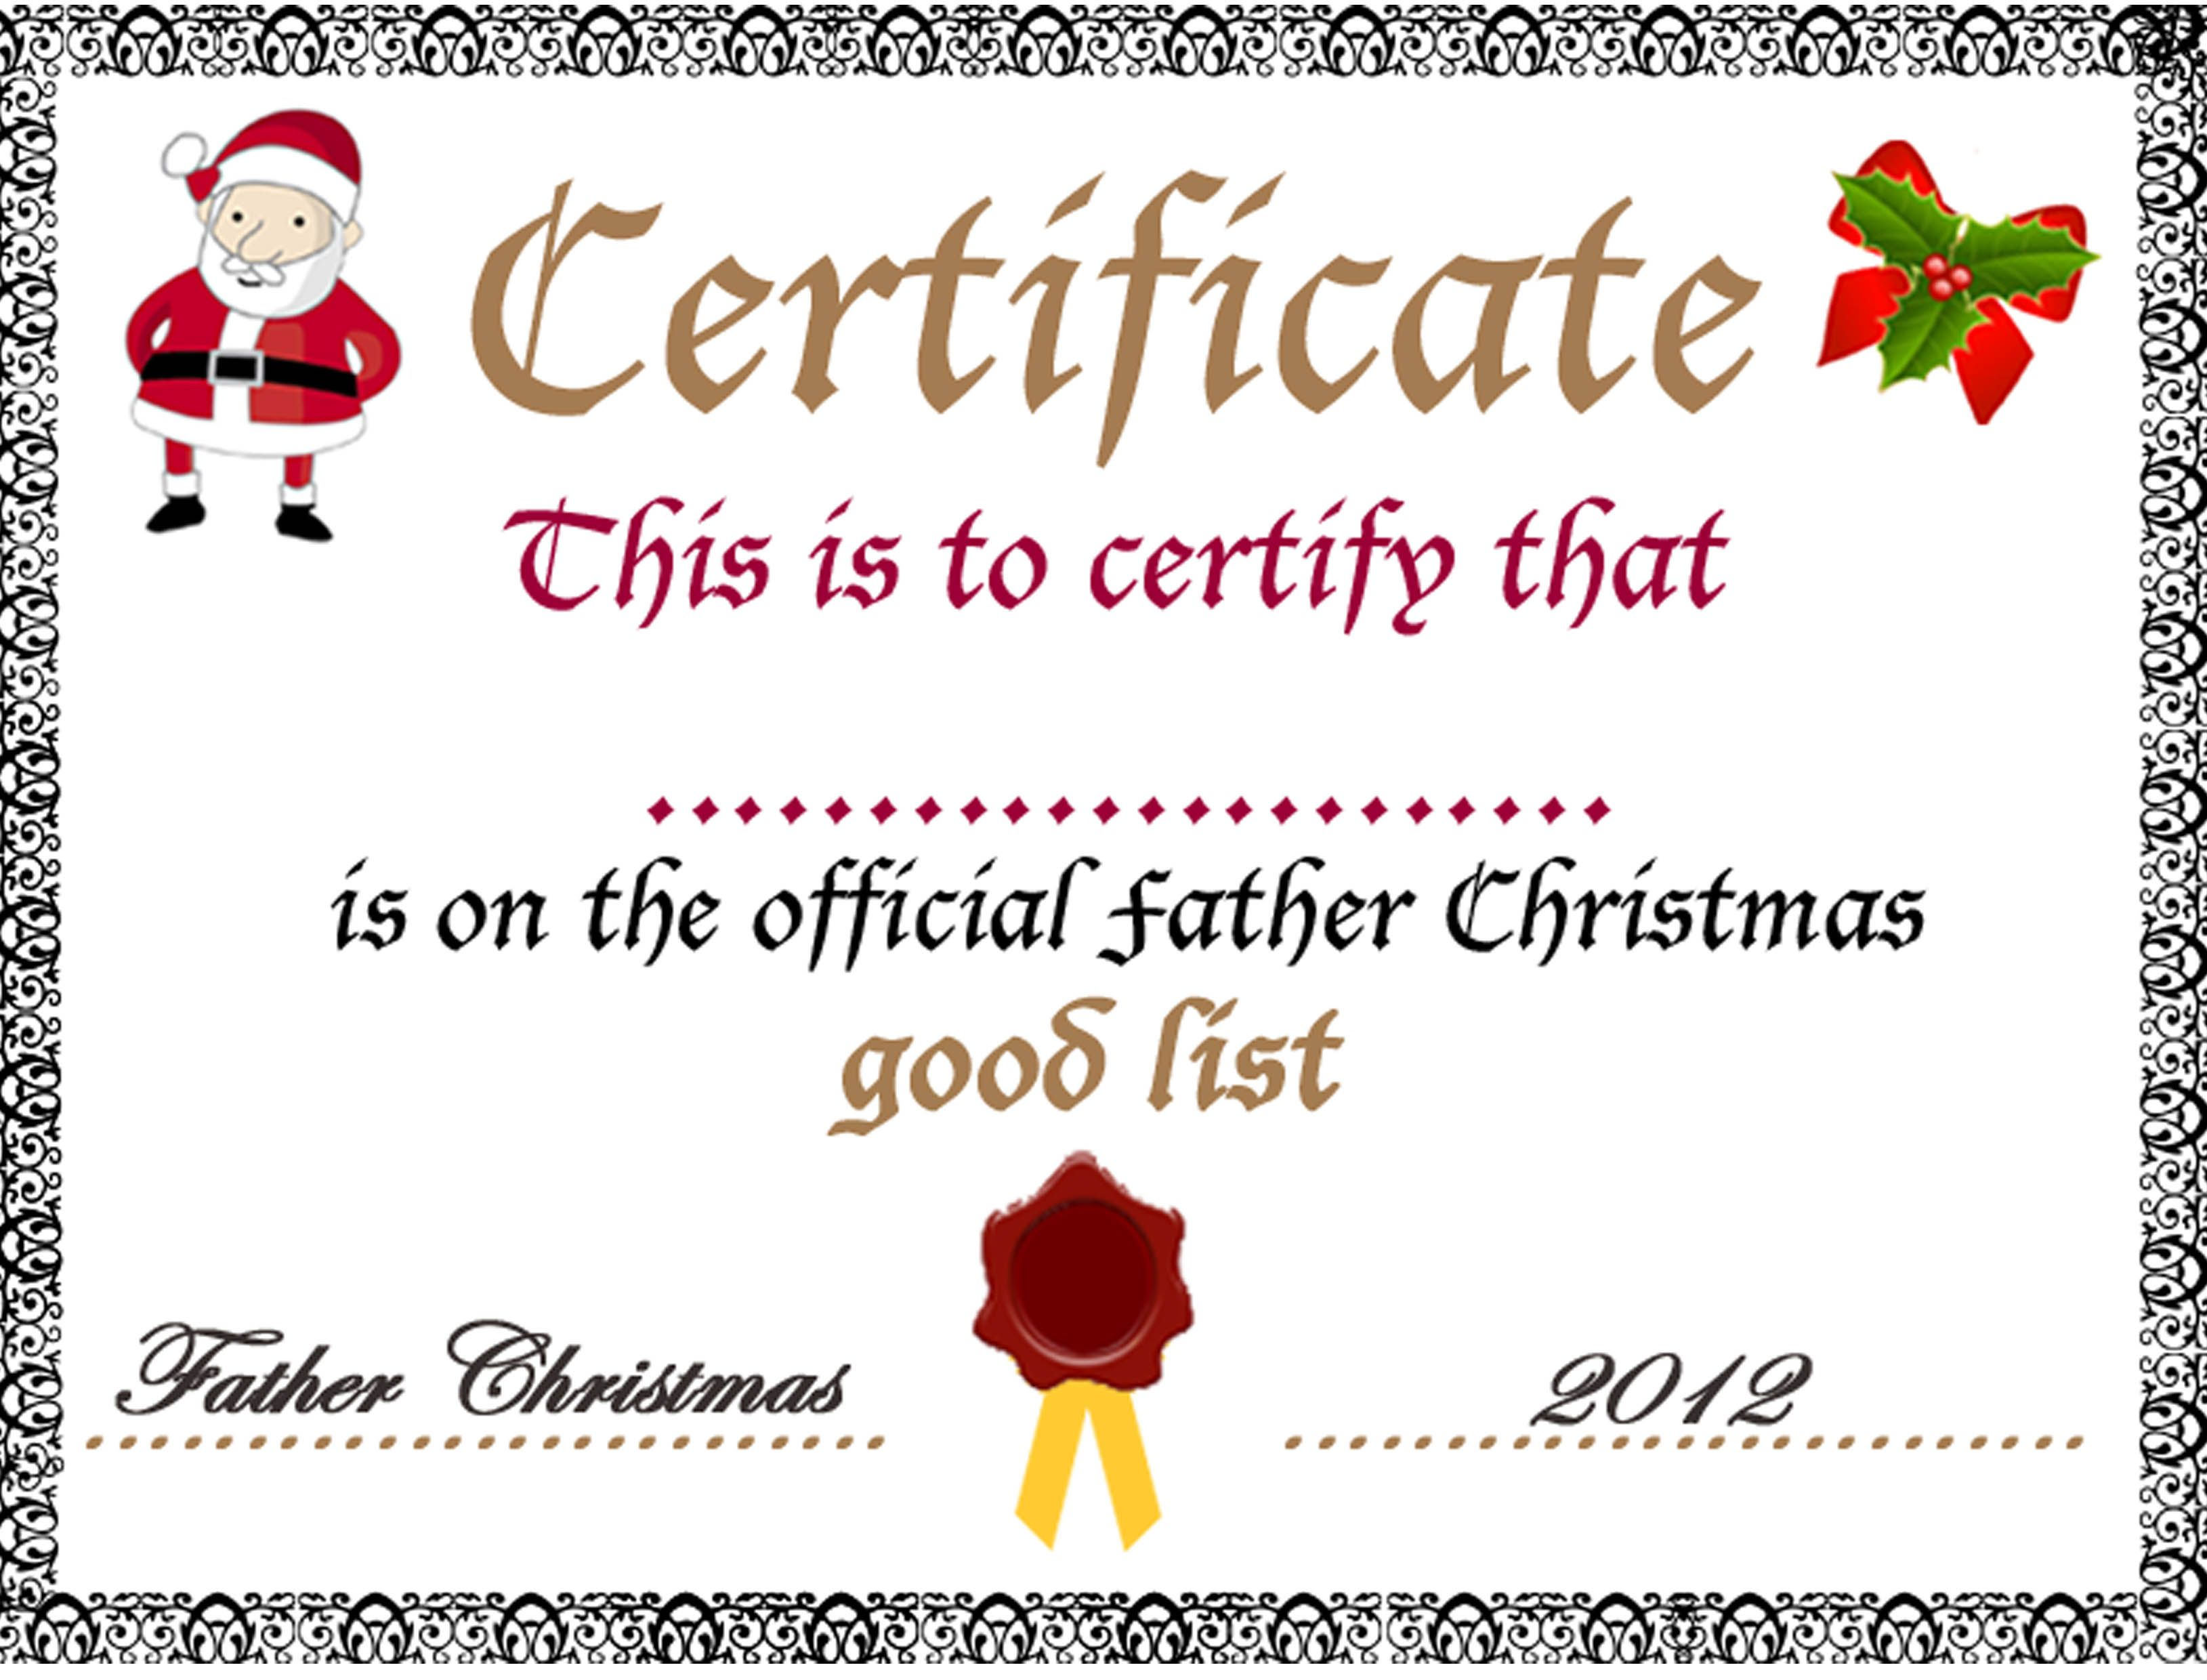 Good list certificate from father christmas free printable good list certificate from father christmas free printable template yadclub